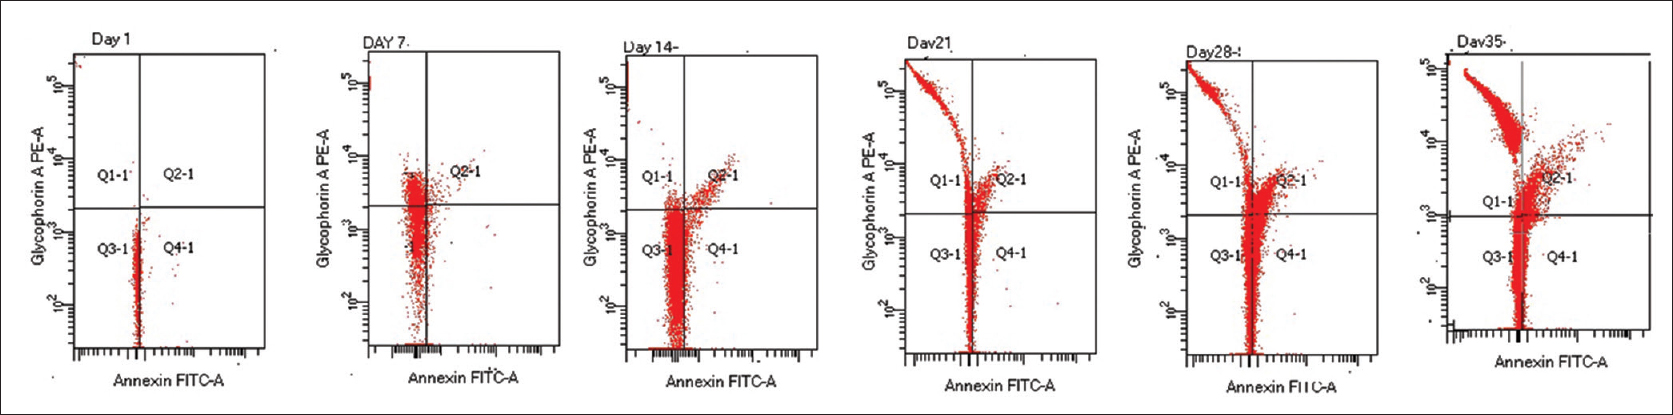 Figure 3: Flow cytometry experiment. The above figure shows example of one of the samples analyzed by flow cytometry through the storage duration 35 days. The dual expression of the annexin V and glycophorin A microparticles in quadrant Q2-displayed in biexponential scale